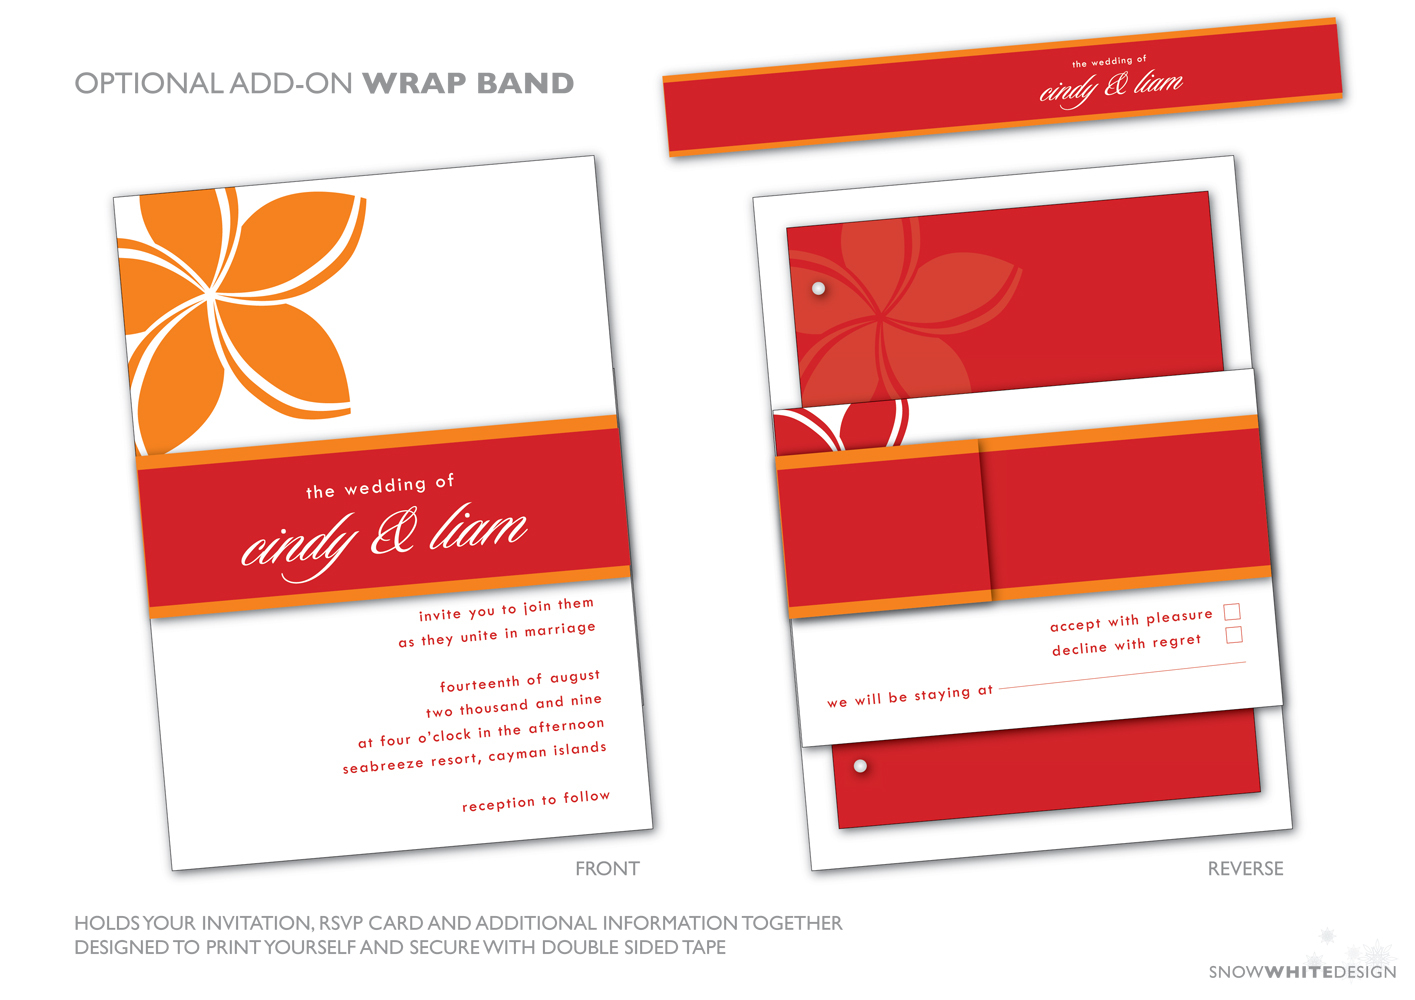 DIY, Flowers & Decor, Stationery, Destinations, white, orange, red, invitation, Invitations, Flower, Tropical, Band, Destination, Rsvp, Wrap, Design, Invite, Snow, Response, Around, Belly, Snow white design, Frangipani